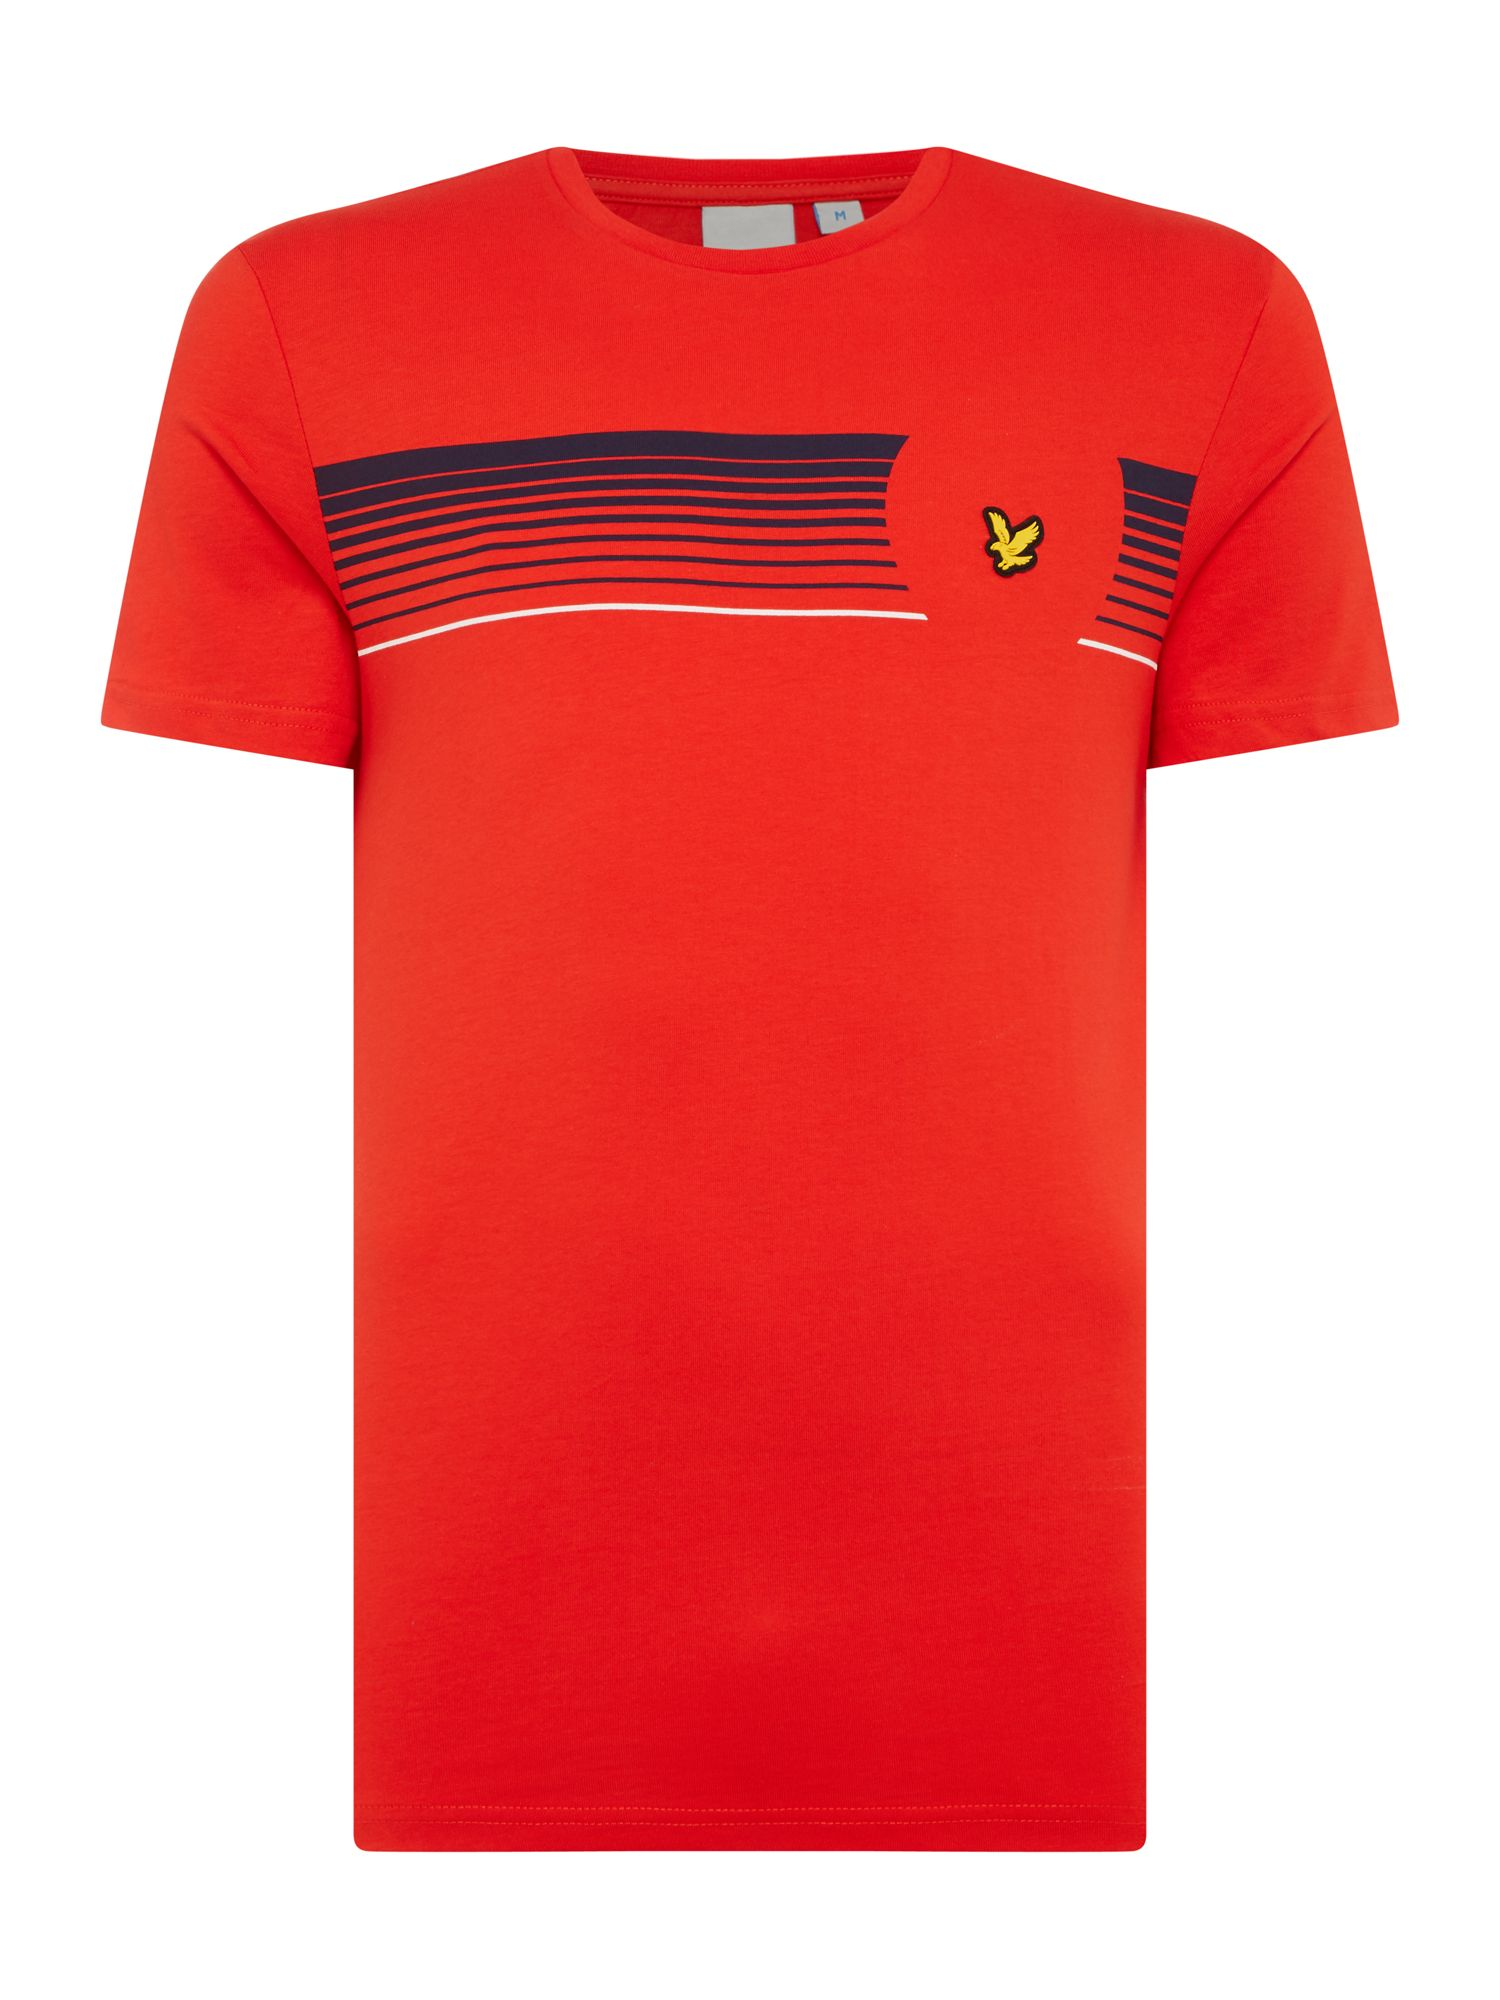 Men's Lyle and Scott Robson graphic print short sleeve tshirt, Red